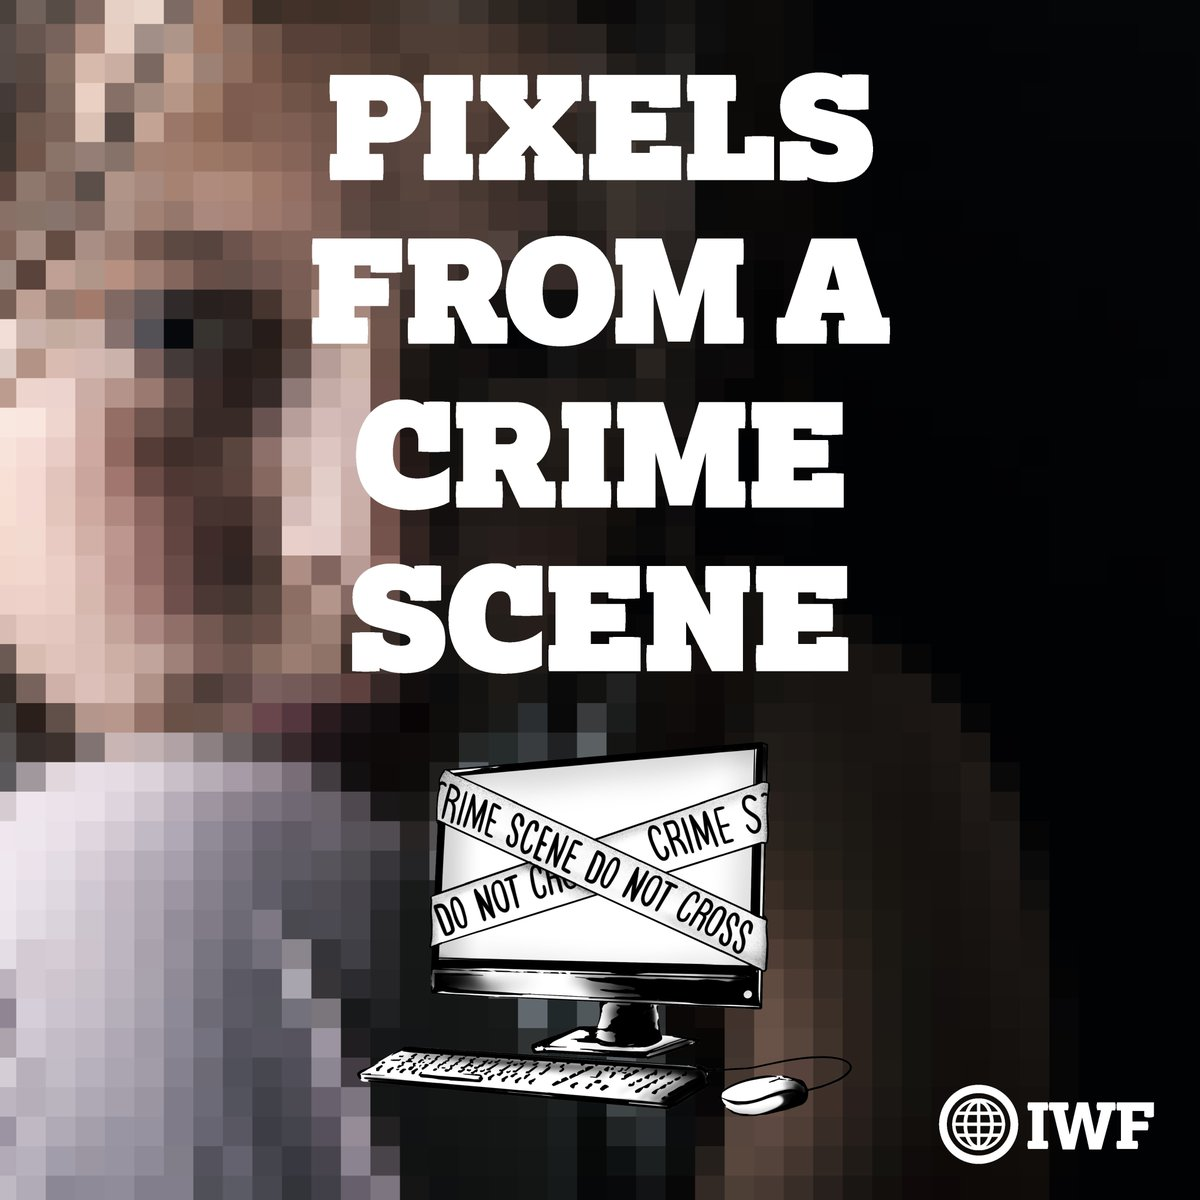 TW Our partners @IWFhotline have launched a ground-breaking podcast series, #PixelsFromACrimeScene  Meet the people at the frontline of the global fight against online child abuse.   A difficult but incredibly important topic, for adult listeners only: